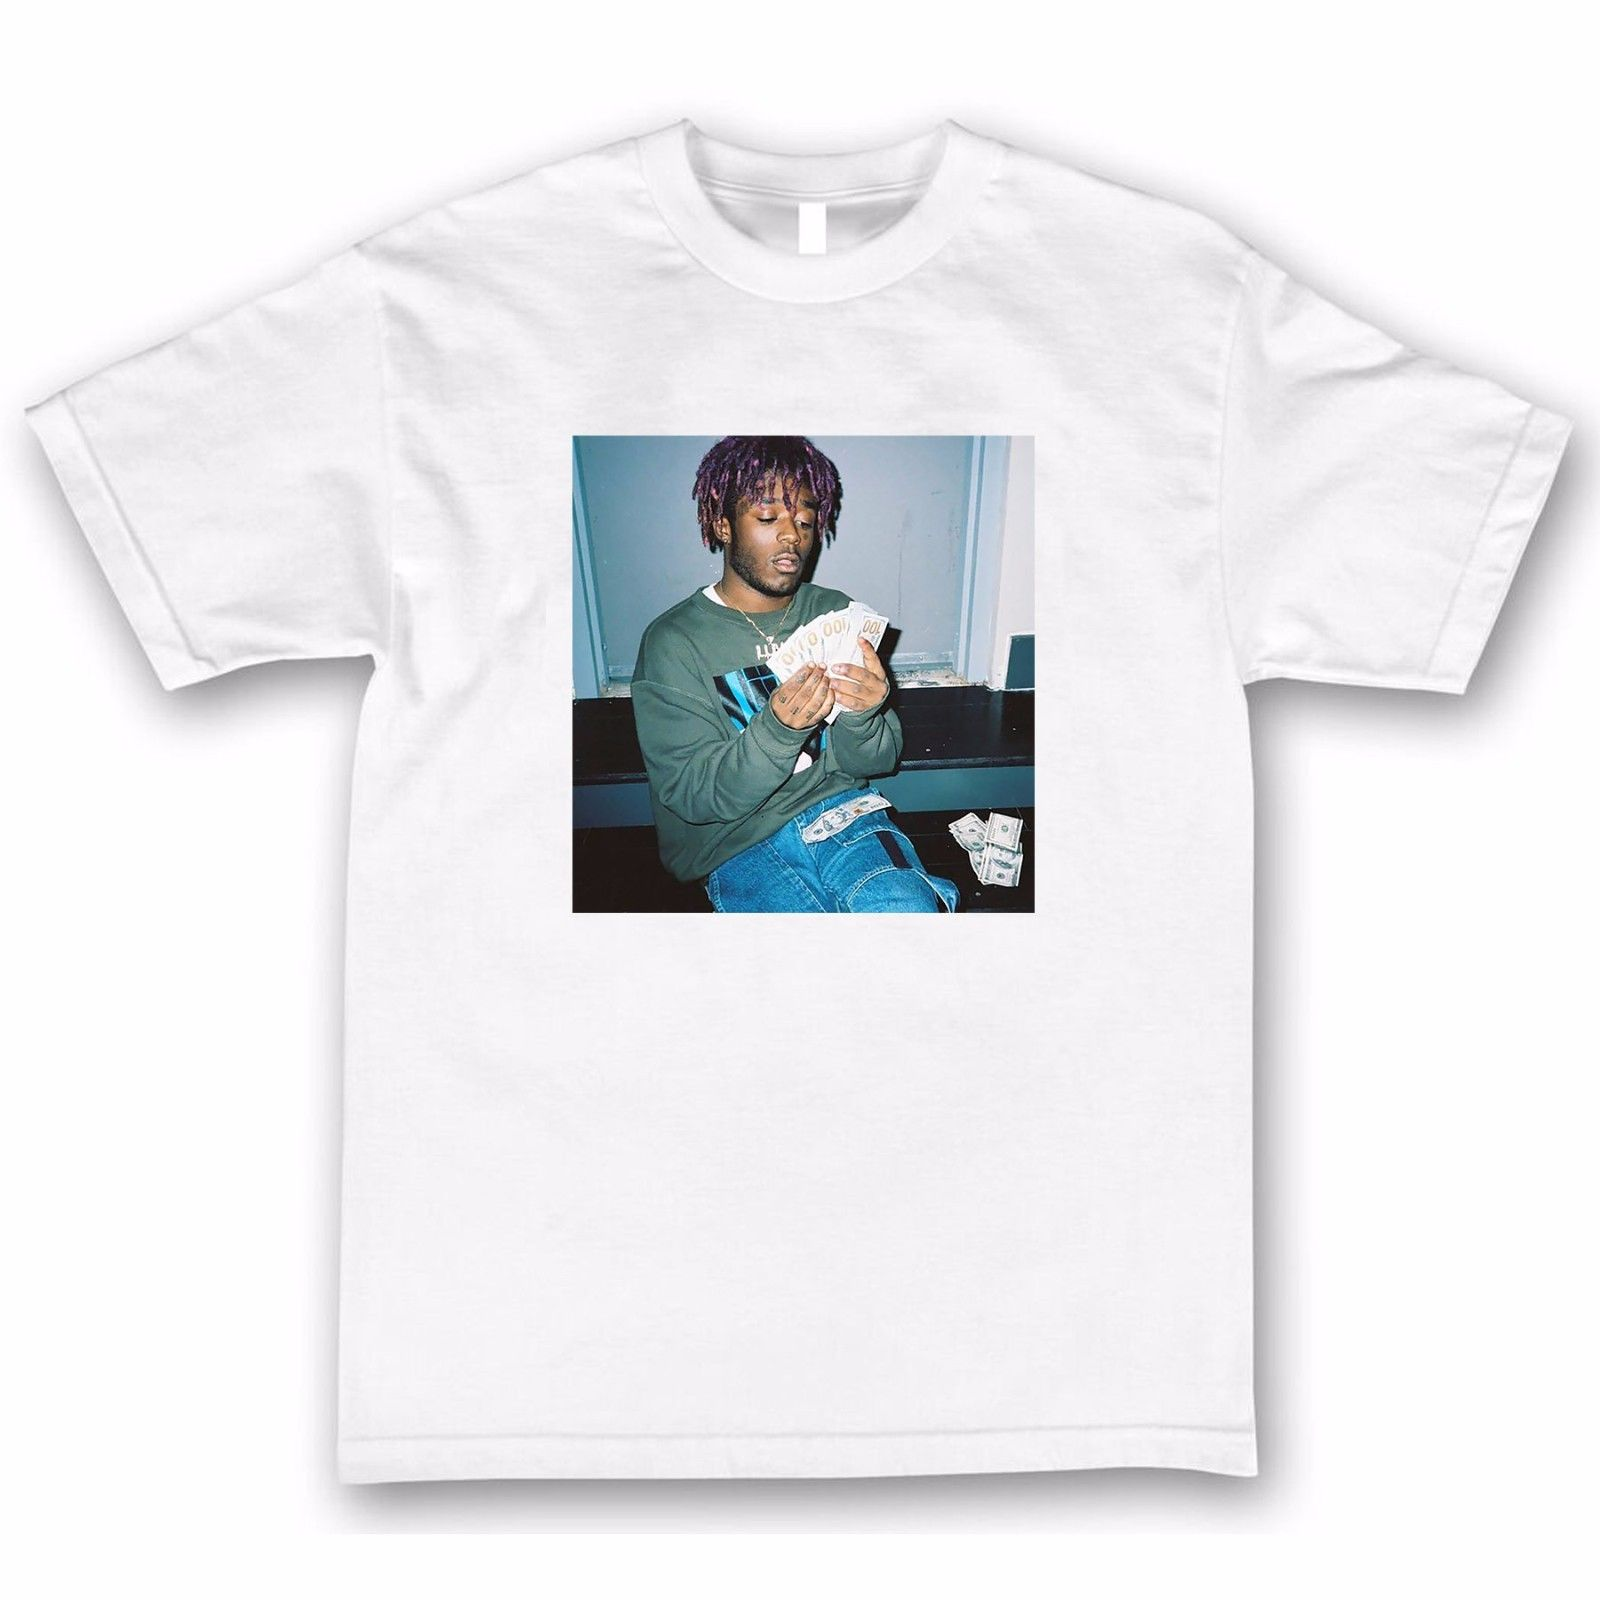 lil uzi vert t shirt tour luv is rage the real uzi vs the. Black Bedroom Furniture Sets. Home Design Ideas